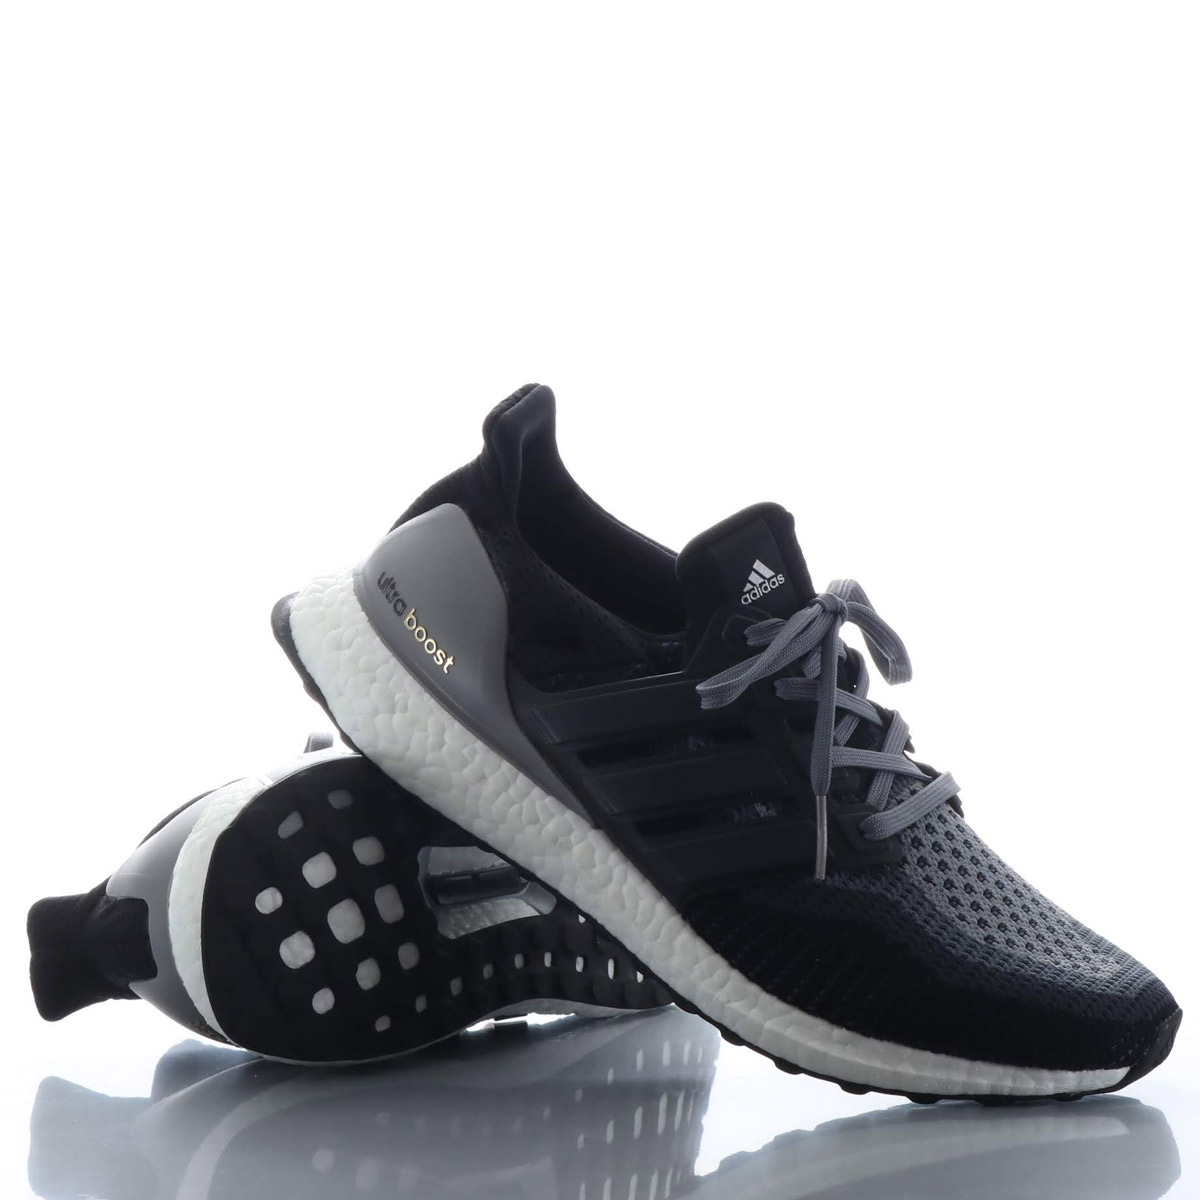 best service 3cf81 1a631 adidas UltraBOOST (Adidas ultra boost) CORE BLACK/CORE BLACK/GREY 18FW-I